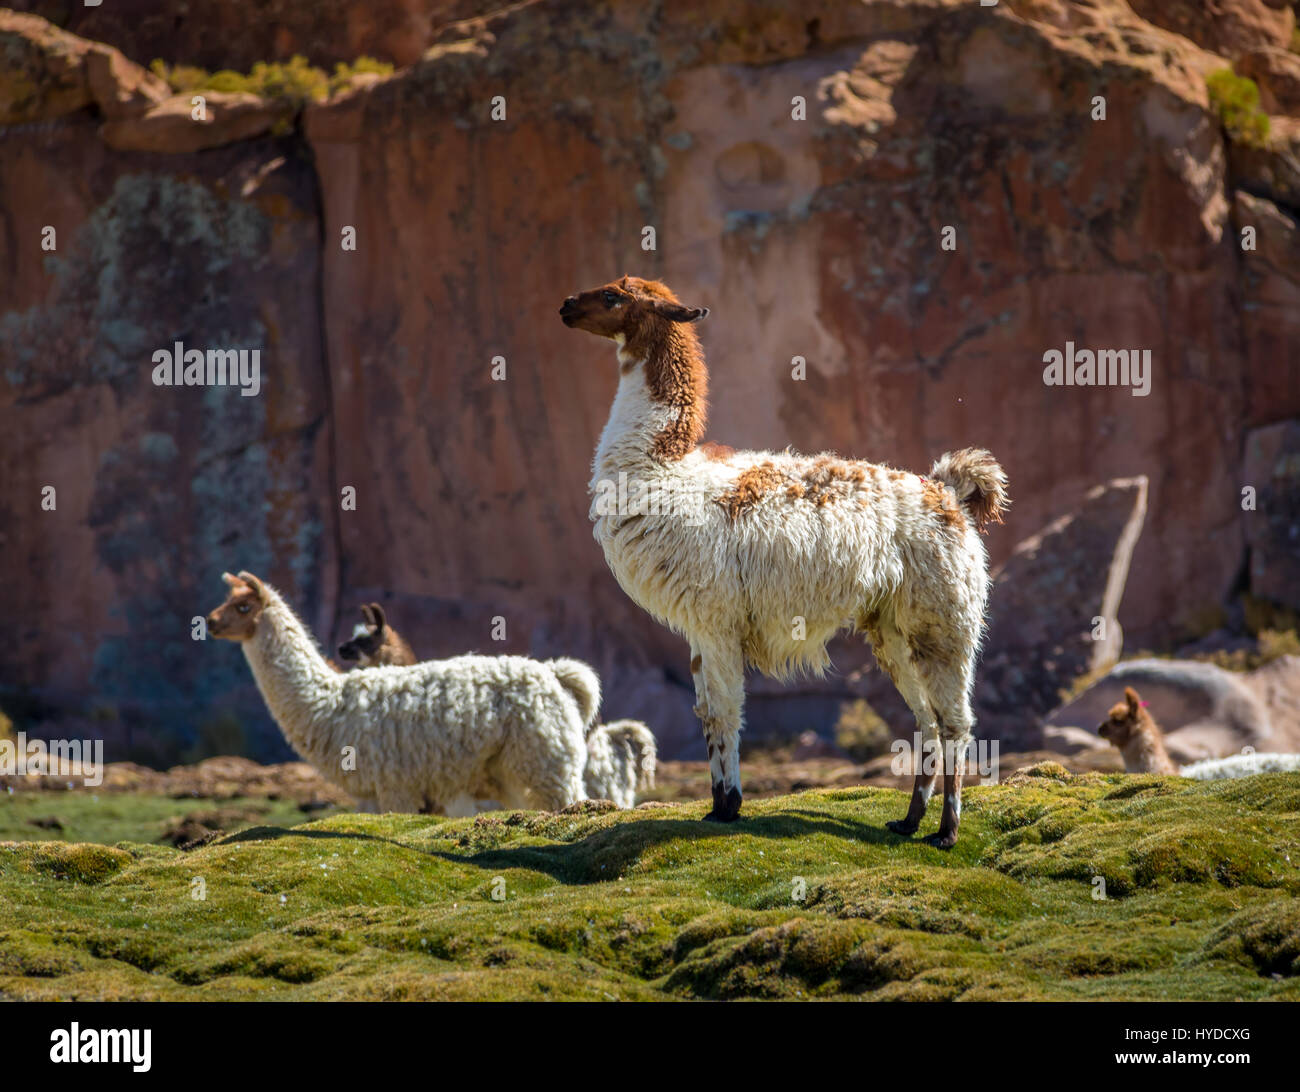 Imposing standing llama on a field - Bolivia - Stock Image